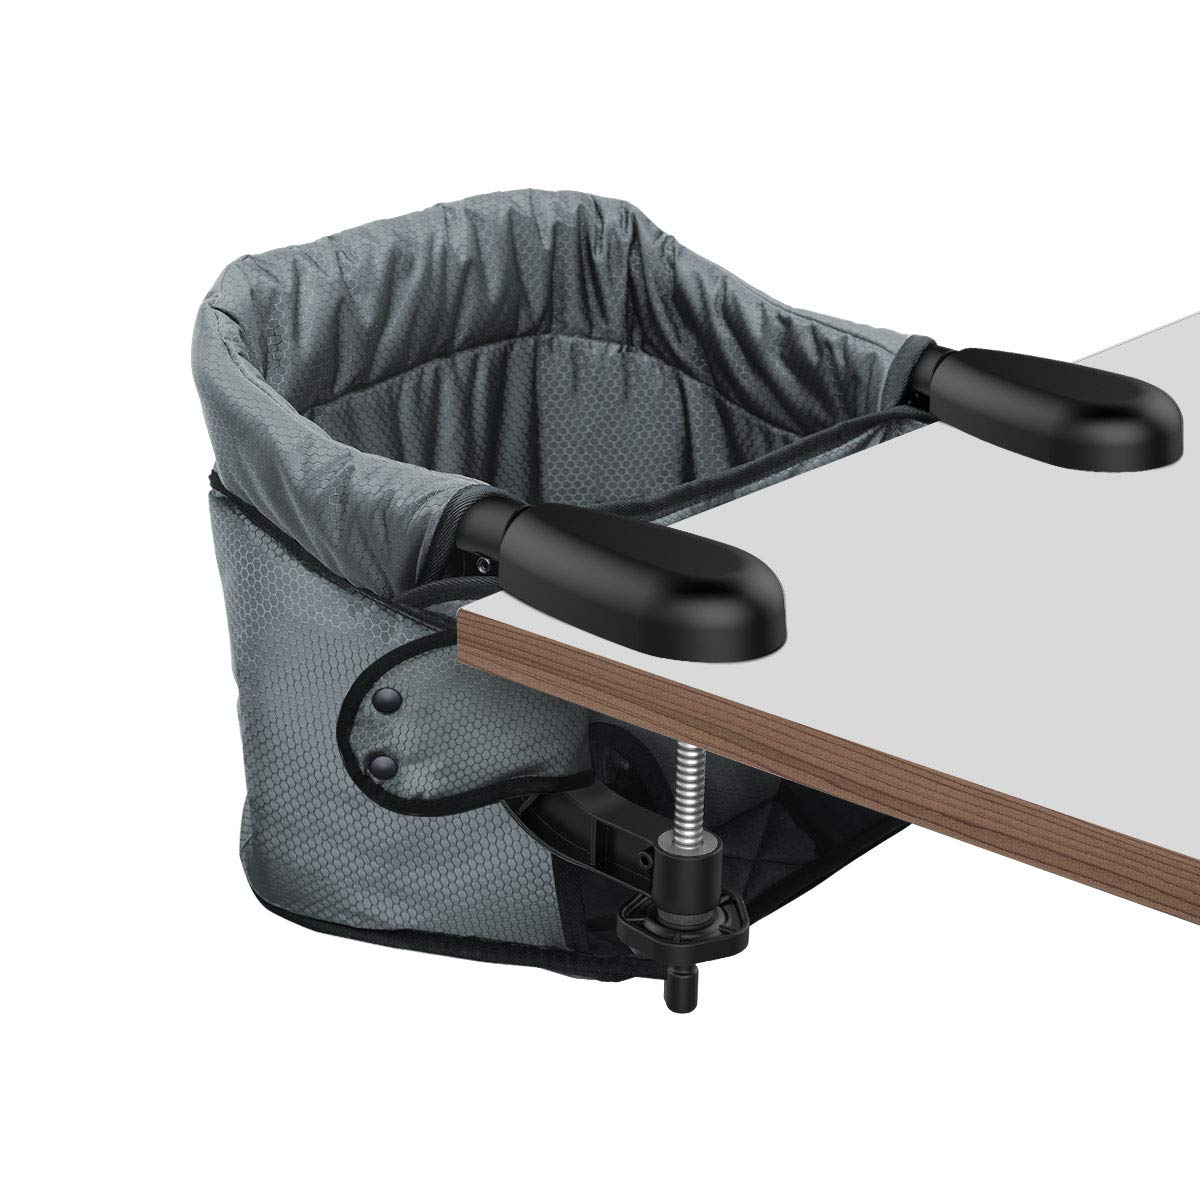 Safe and High Load Design Removable Seat Cushion Hook On Chair Fast Table Chair Fold-flat Storage and Tight Fixing Clip on Table High Chair Dark Green Machine-Washable and Avoid Cracking Fabric